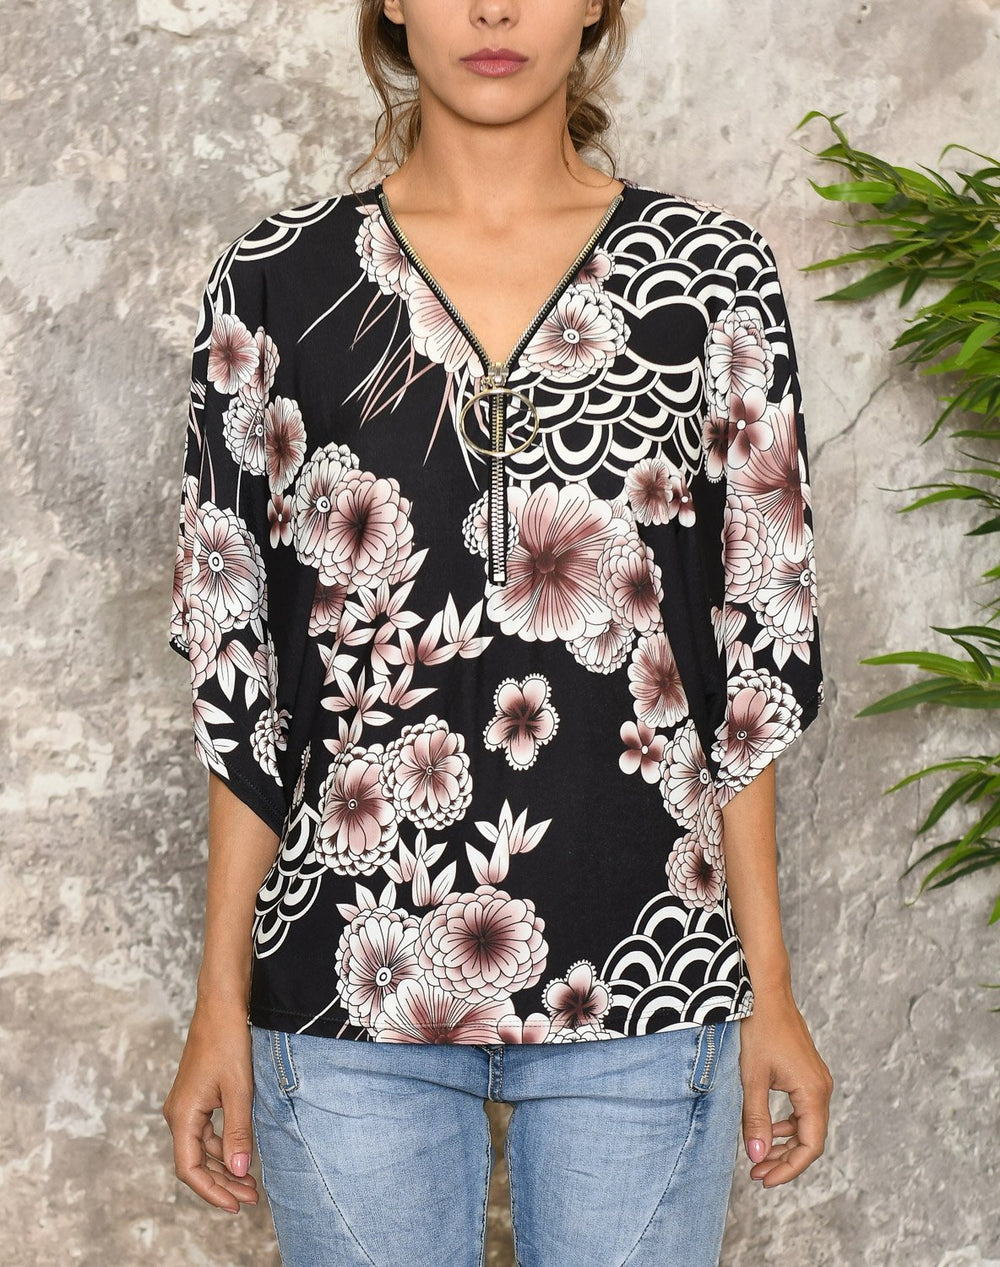 Mona bluse black mix - Online-Mode